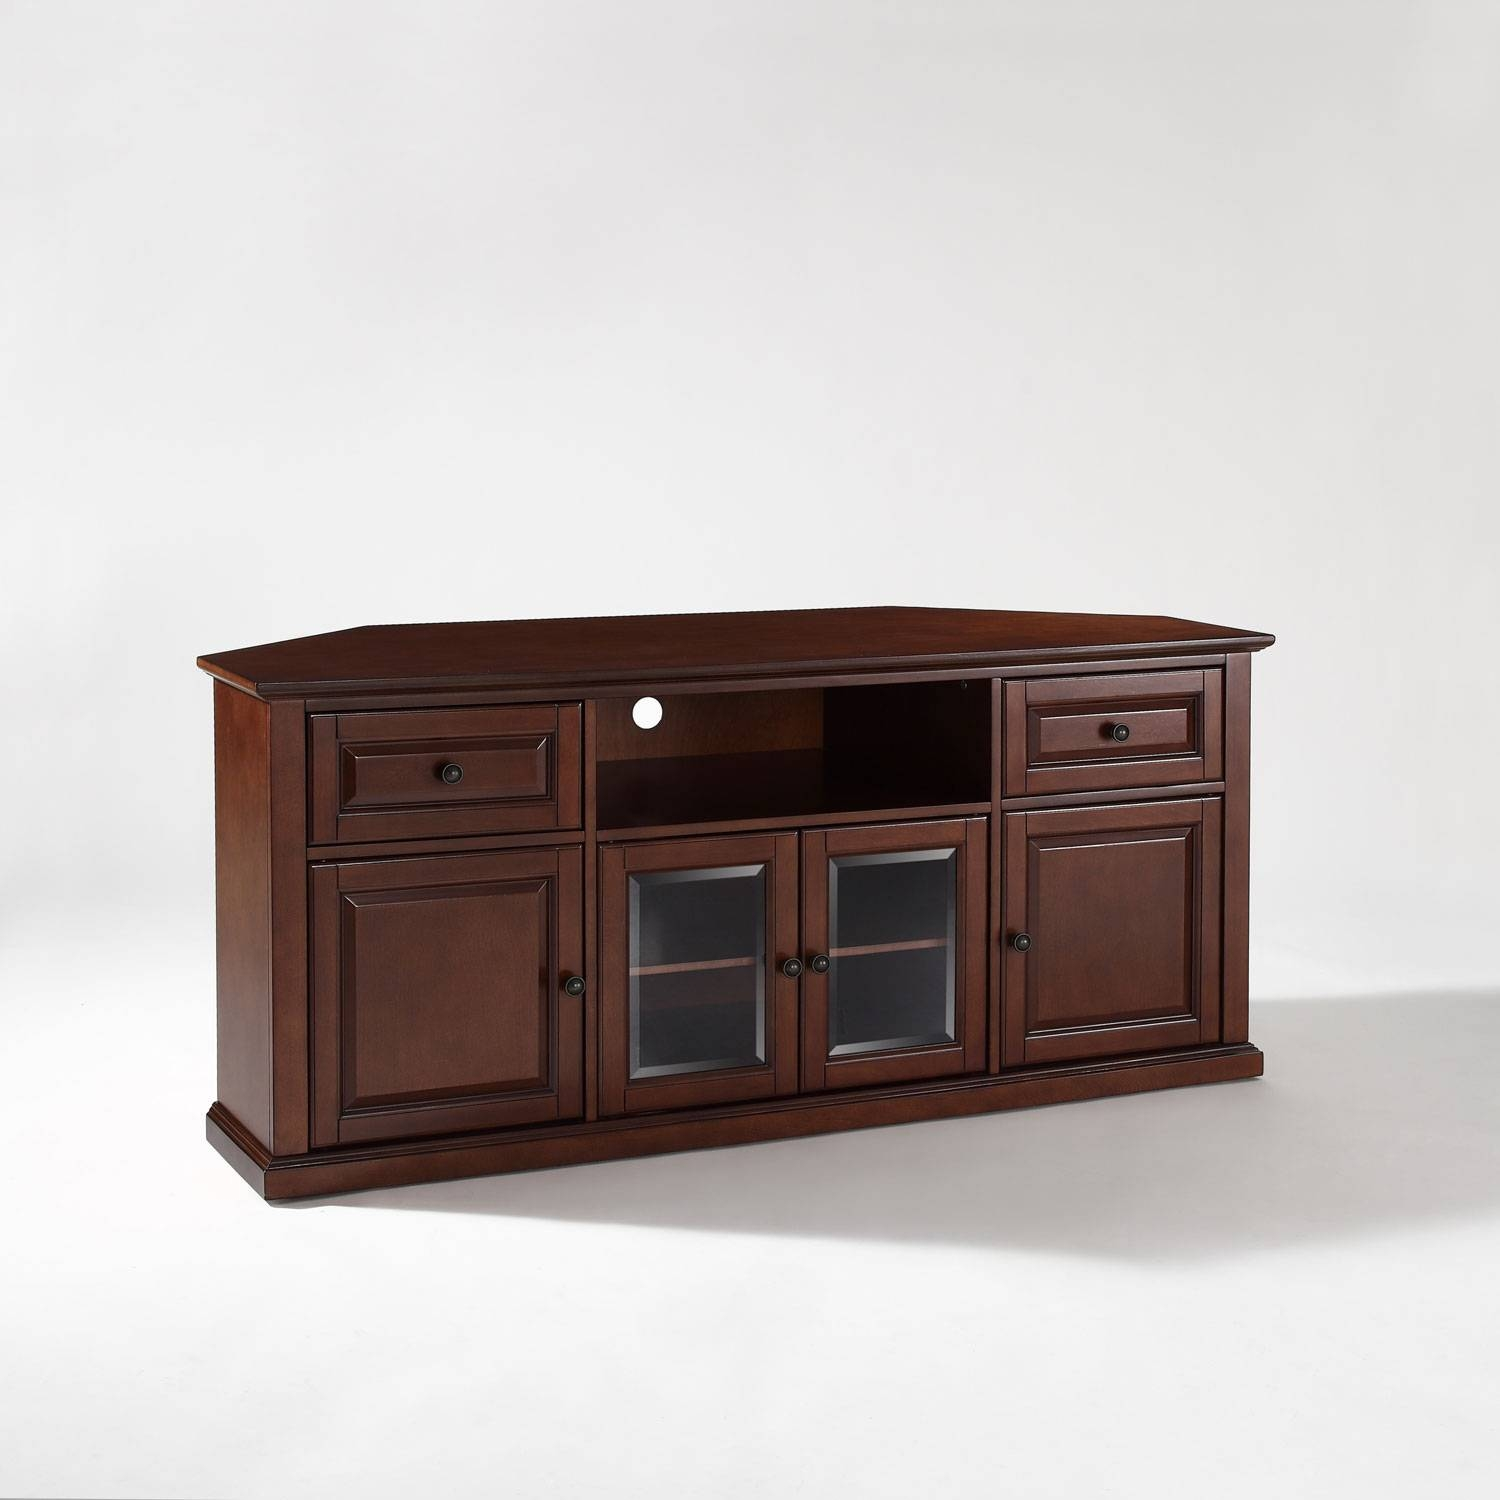 60 Inch Corner Tv Stand In Vintage Mahogany Crosley Furniture with Corner Tv Cabinets (Image 1 of 15)